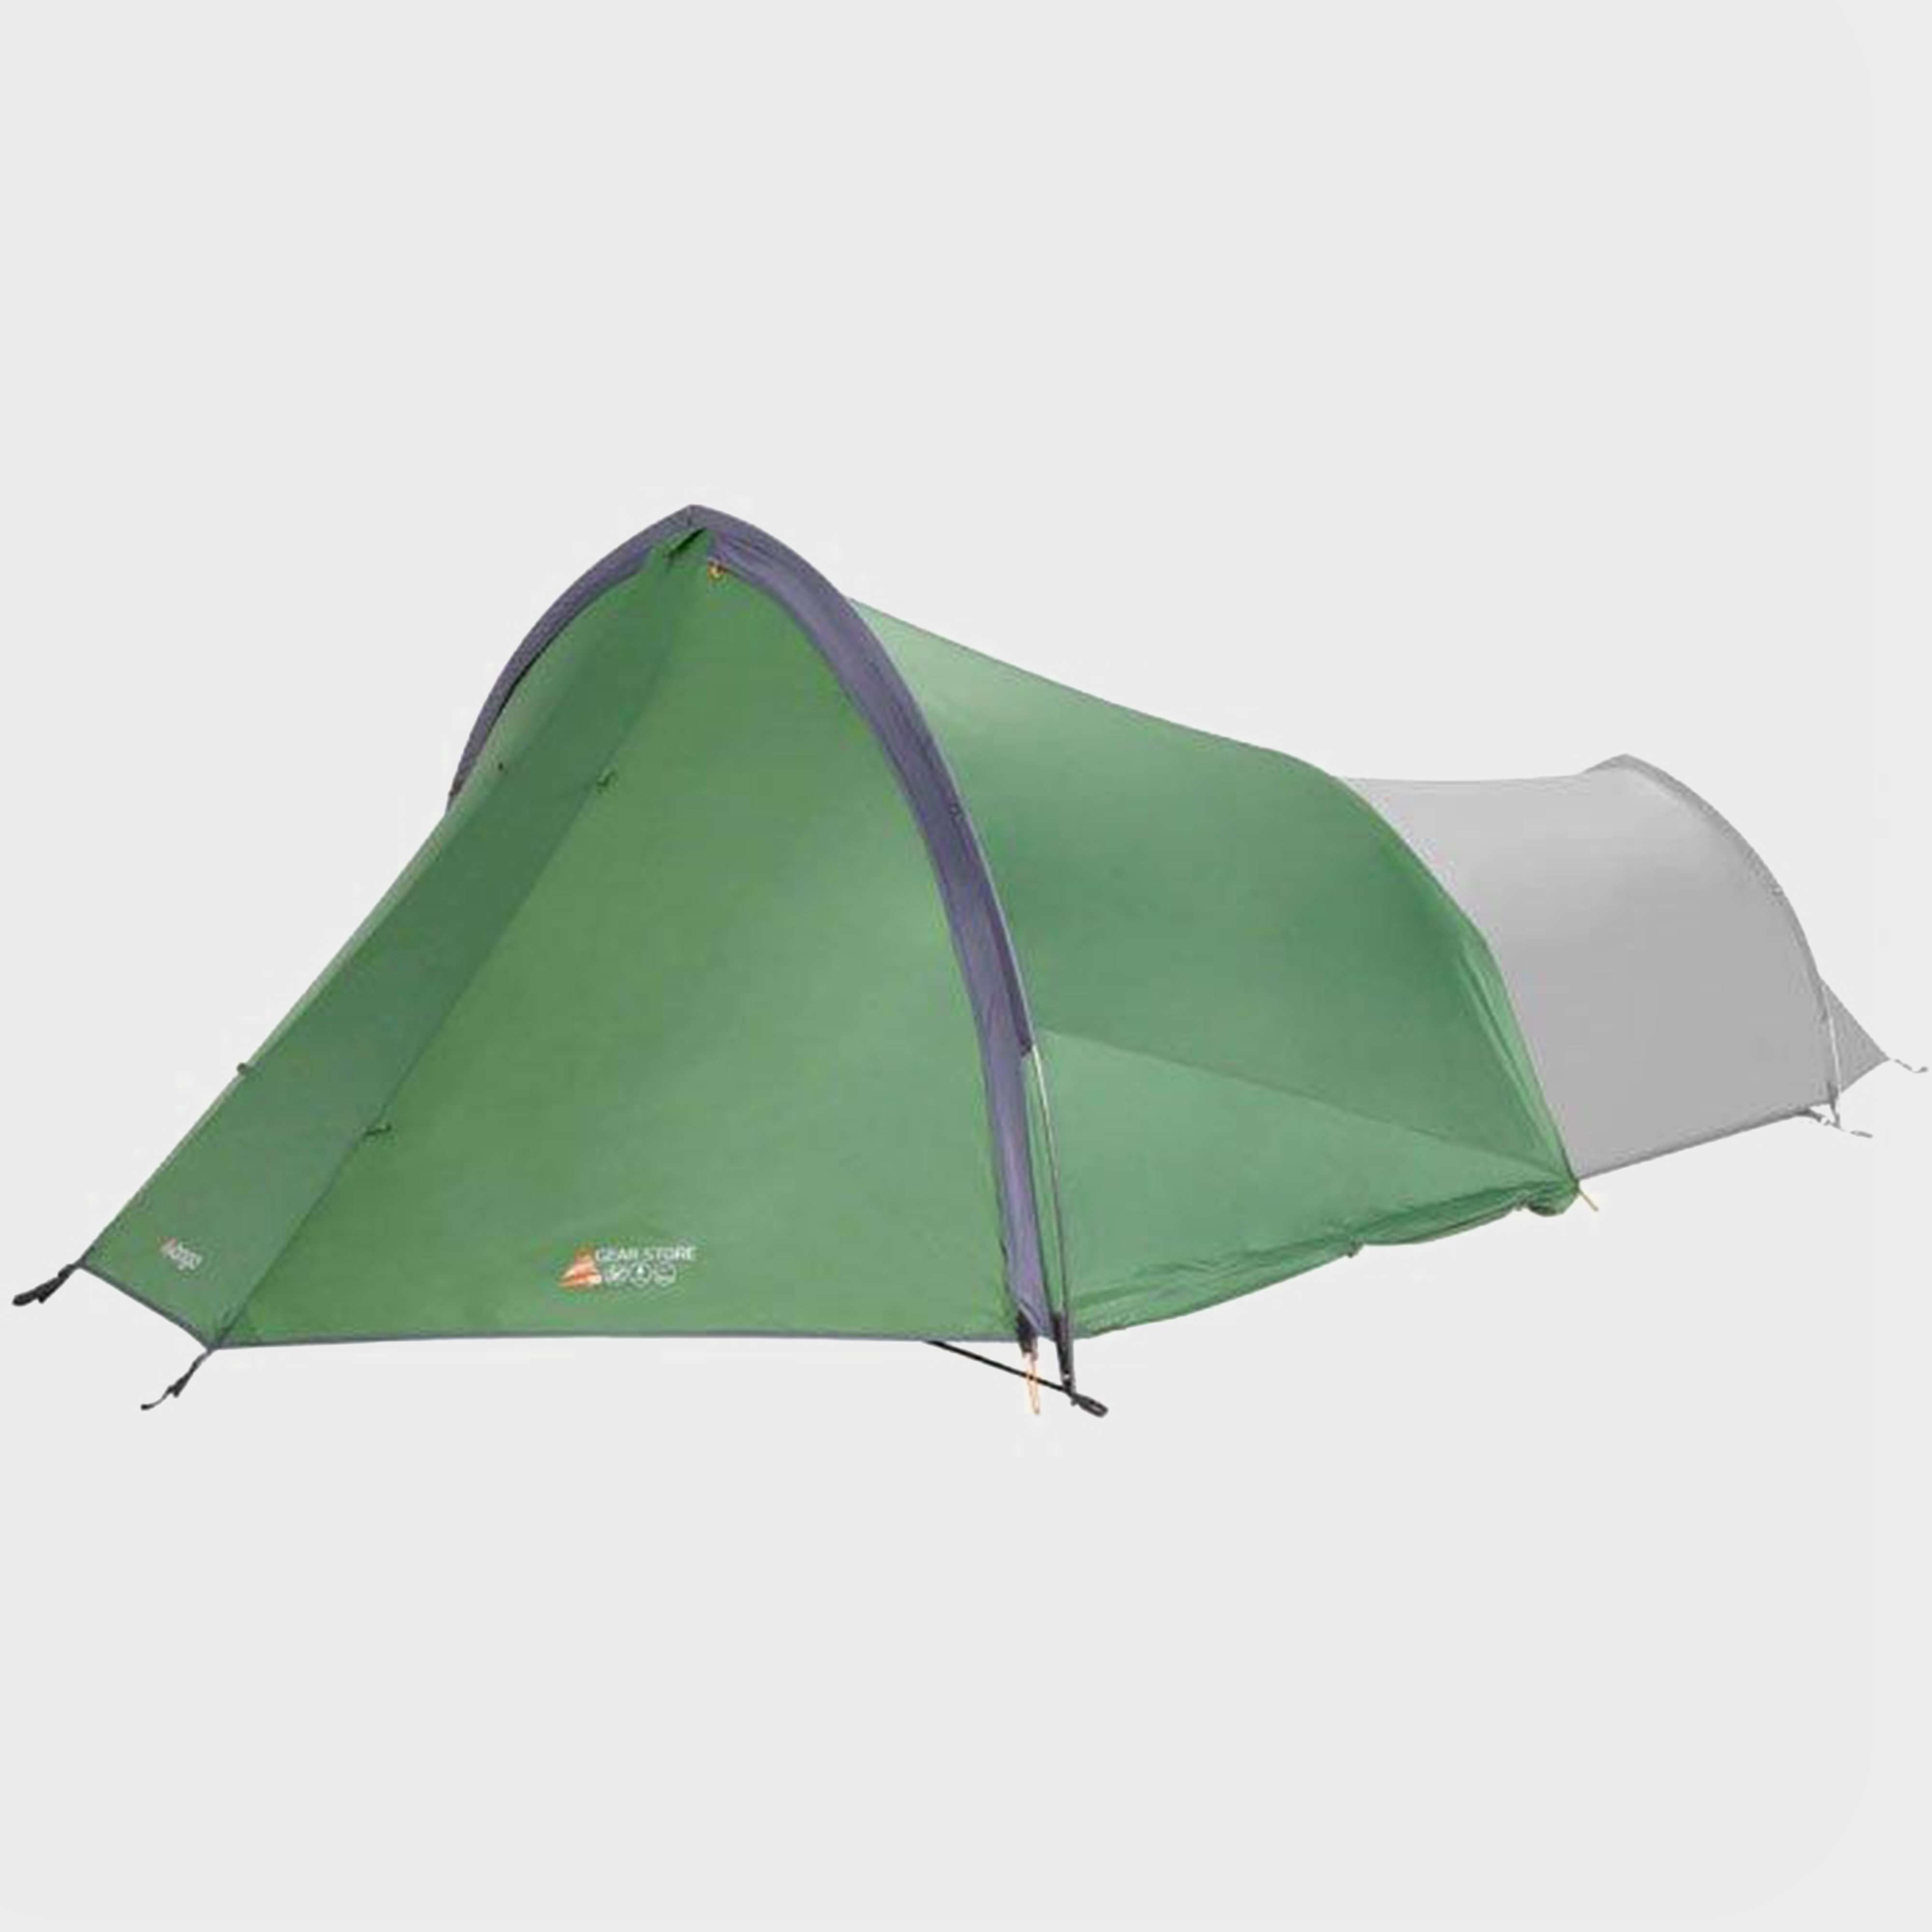 VANGO Gear Store Tent Add-On